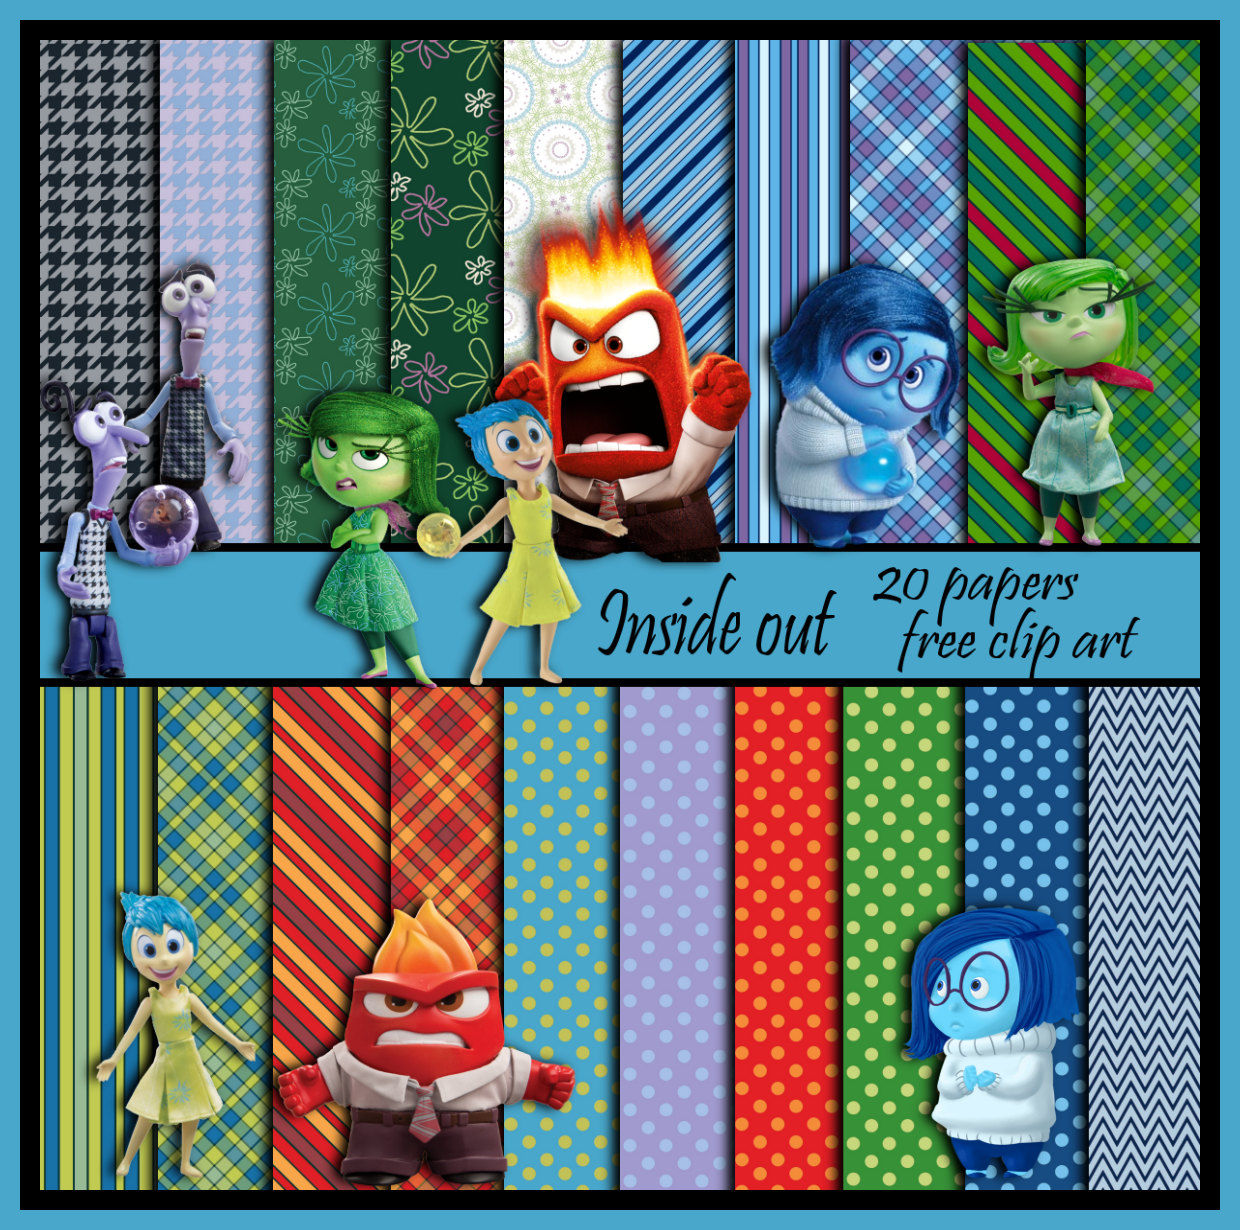 Free inside out clipart clip art free download Inside out clipart disgust - ClipartFest clip art free download